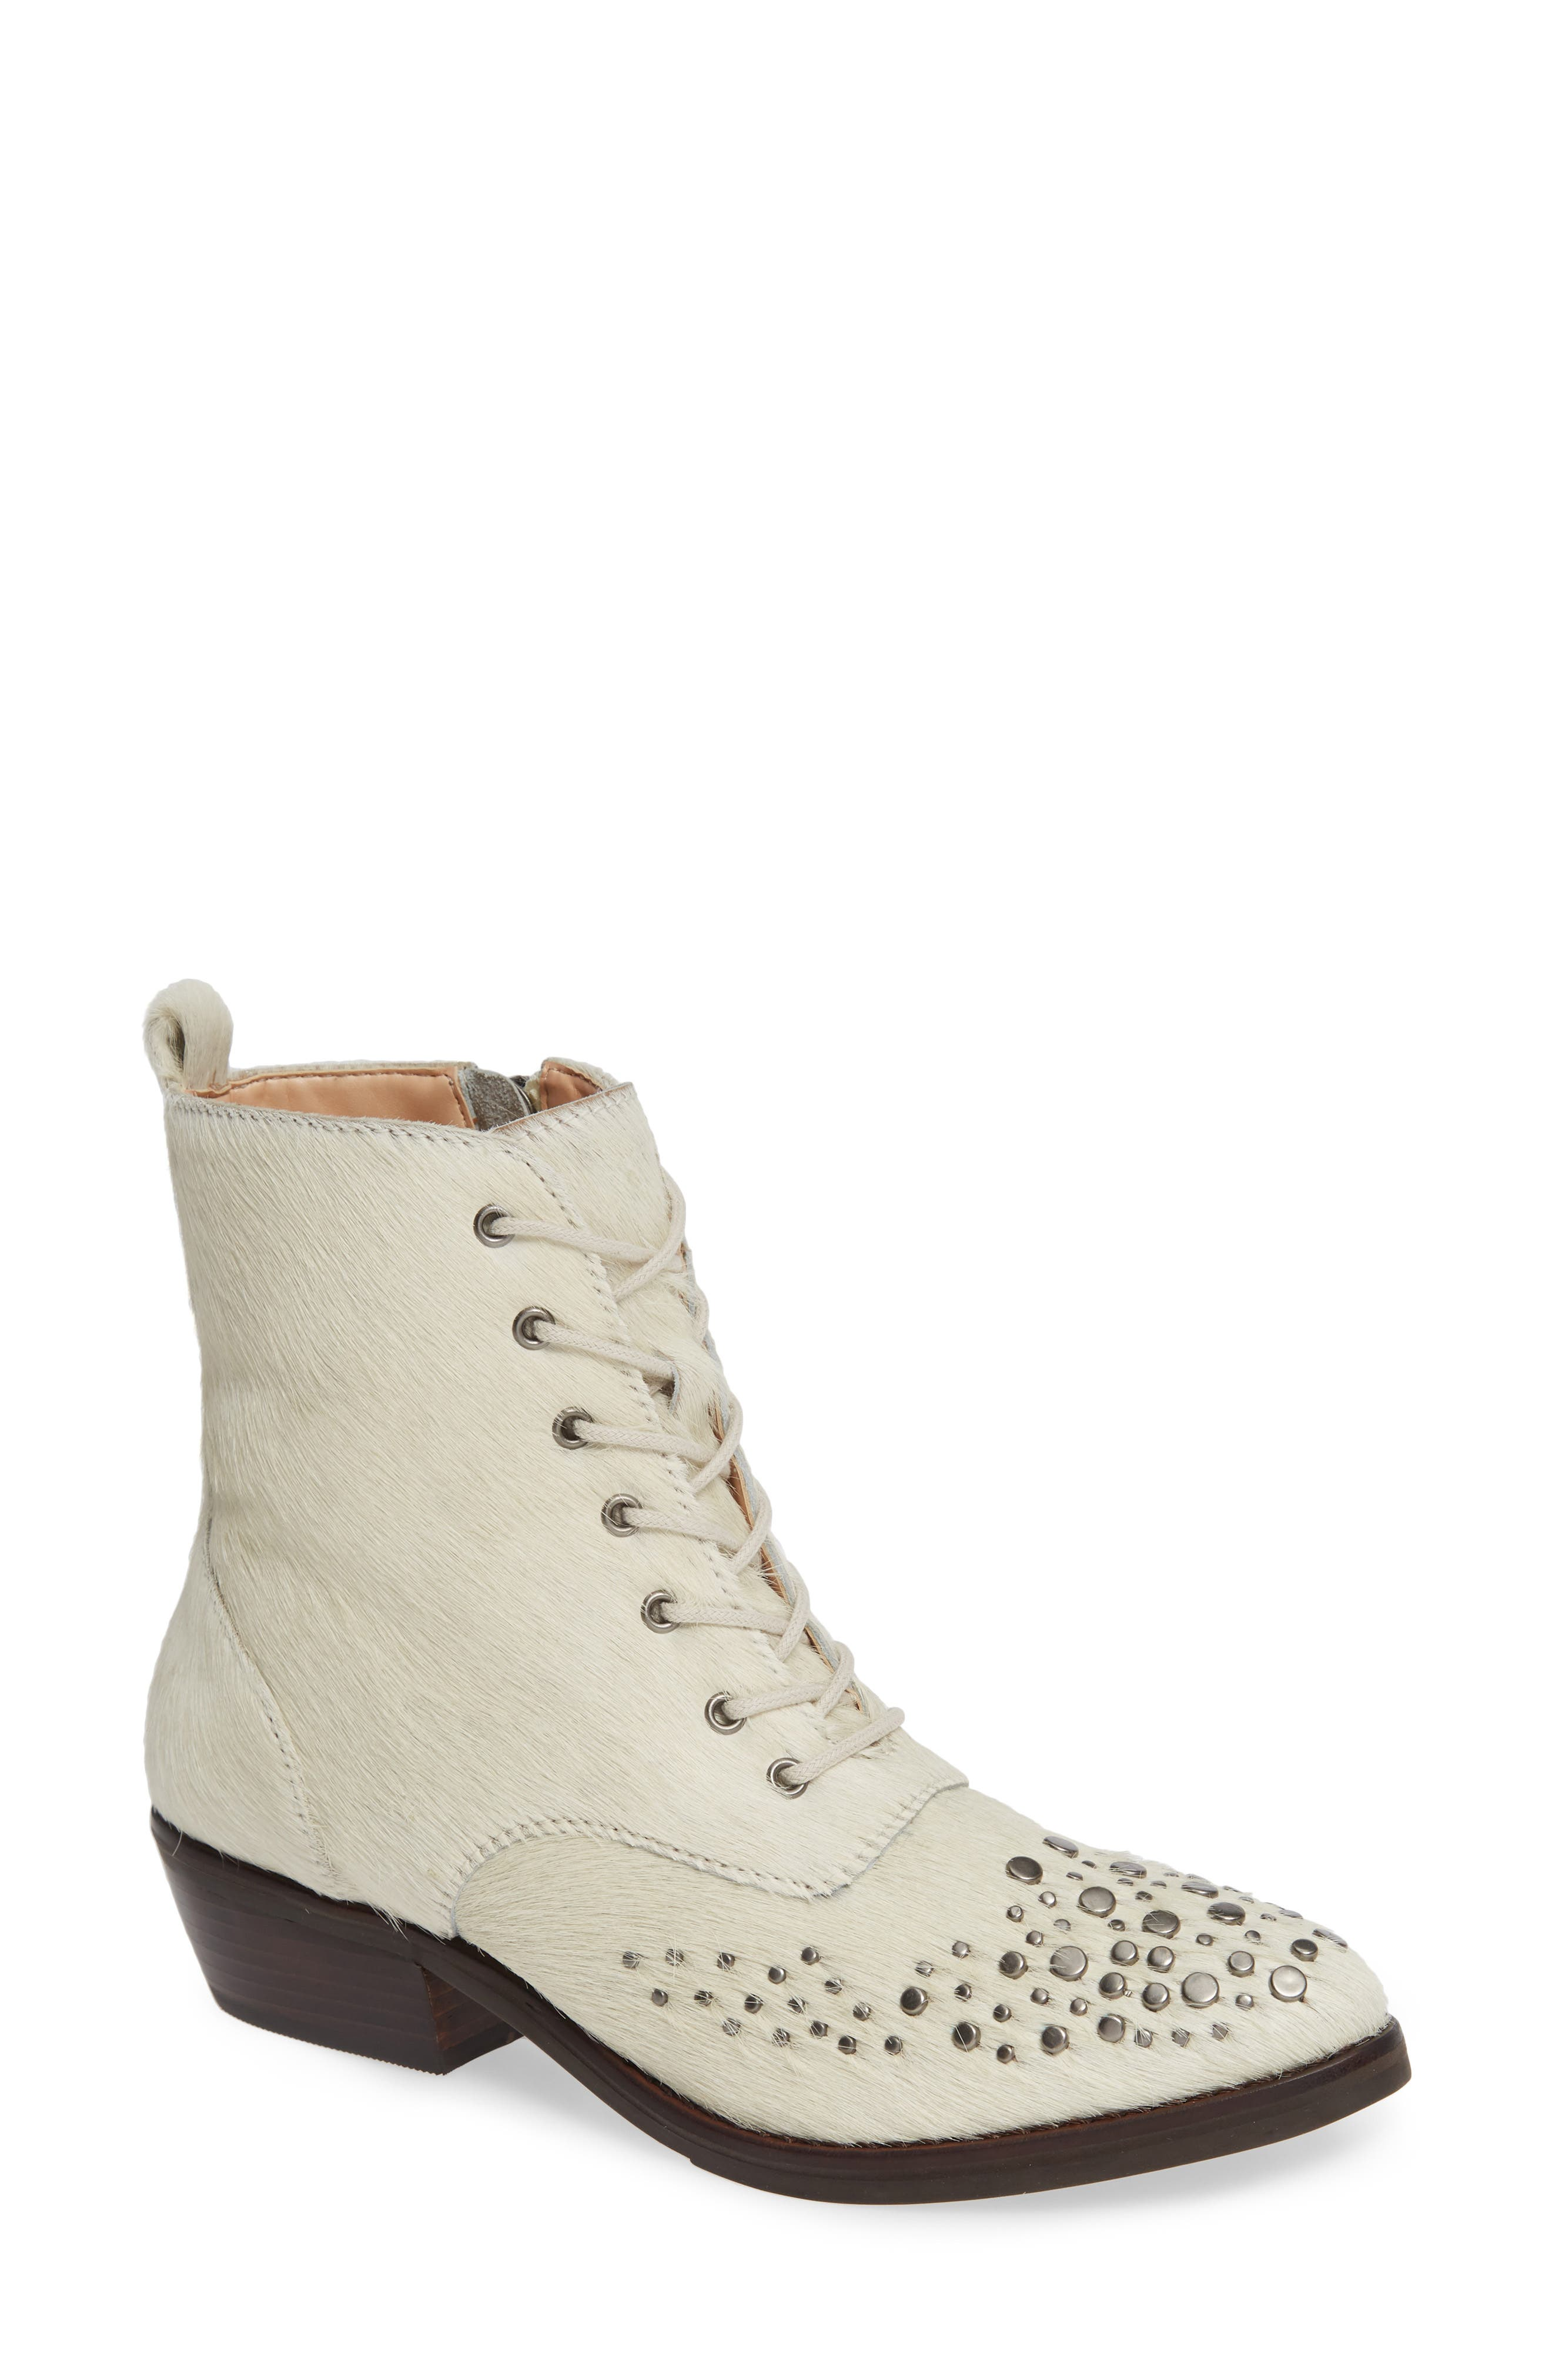 LUST FOR LIFE Portland Boot in White Leather